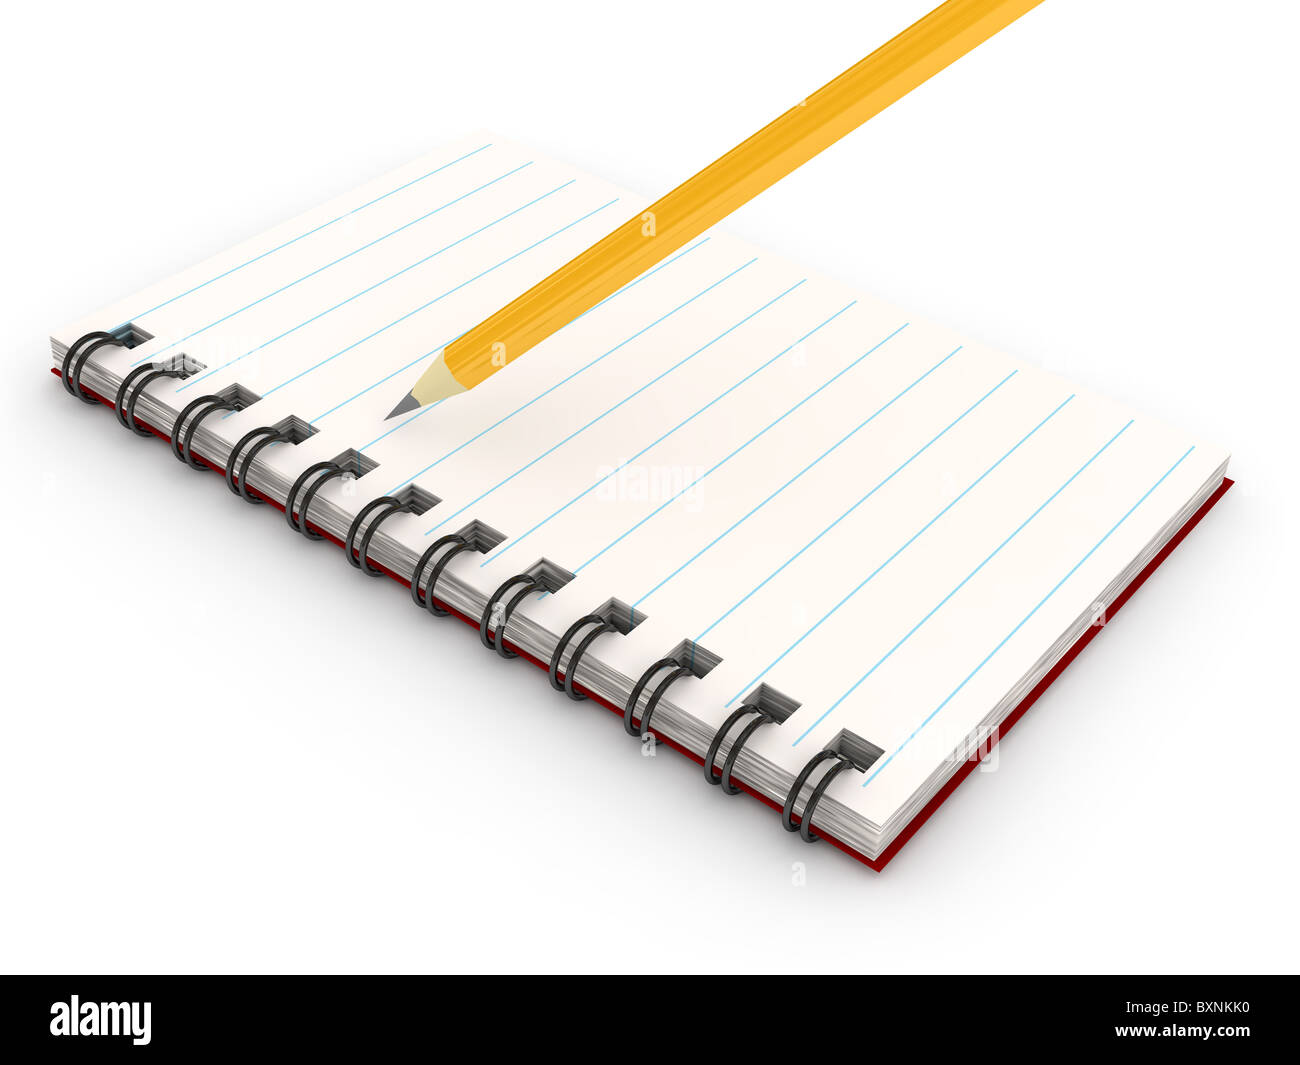 Notebook over white background - Stock Image